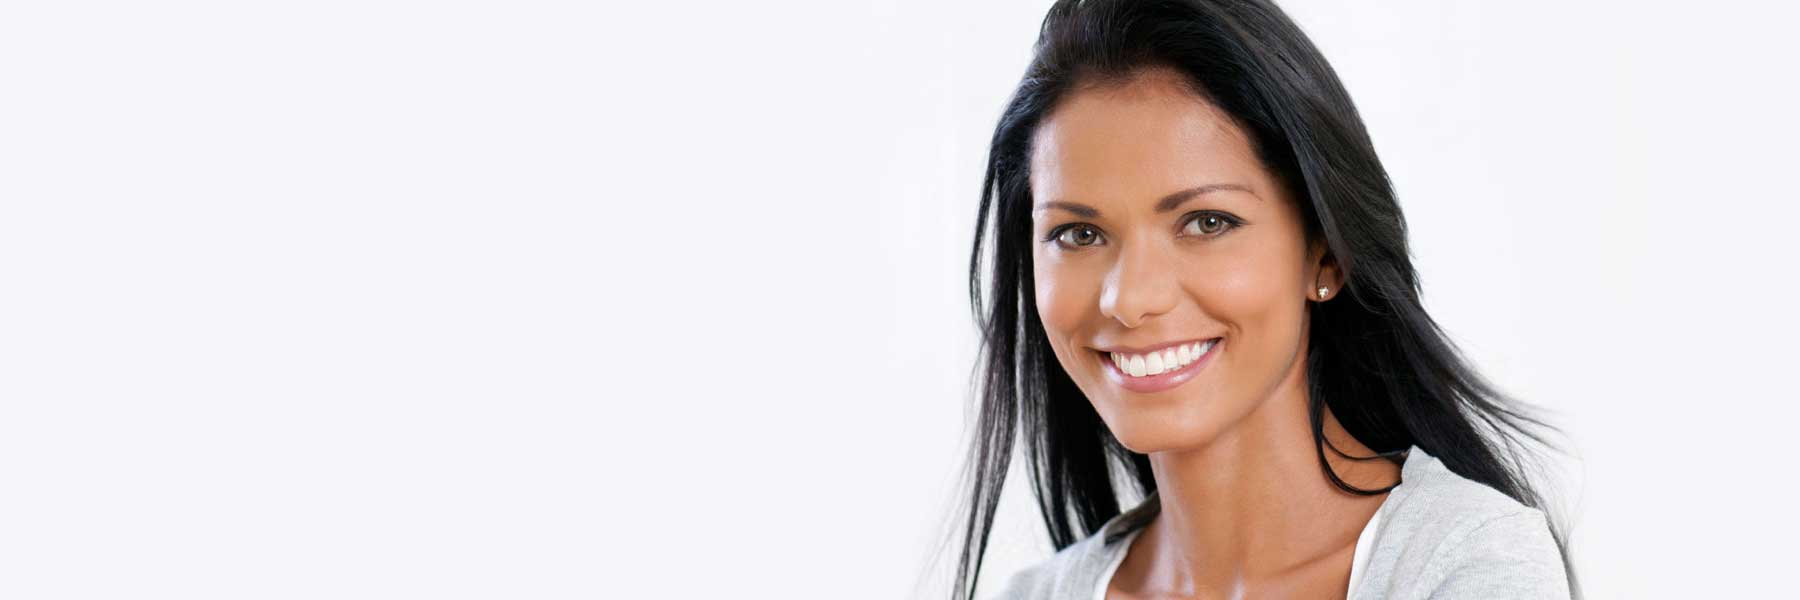 Cosmetic Dentistry in Vallejo, CA banner image